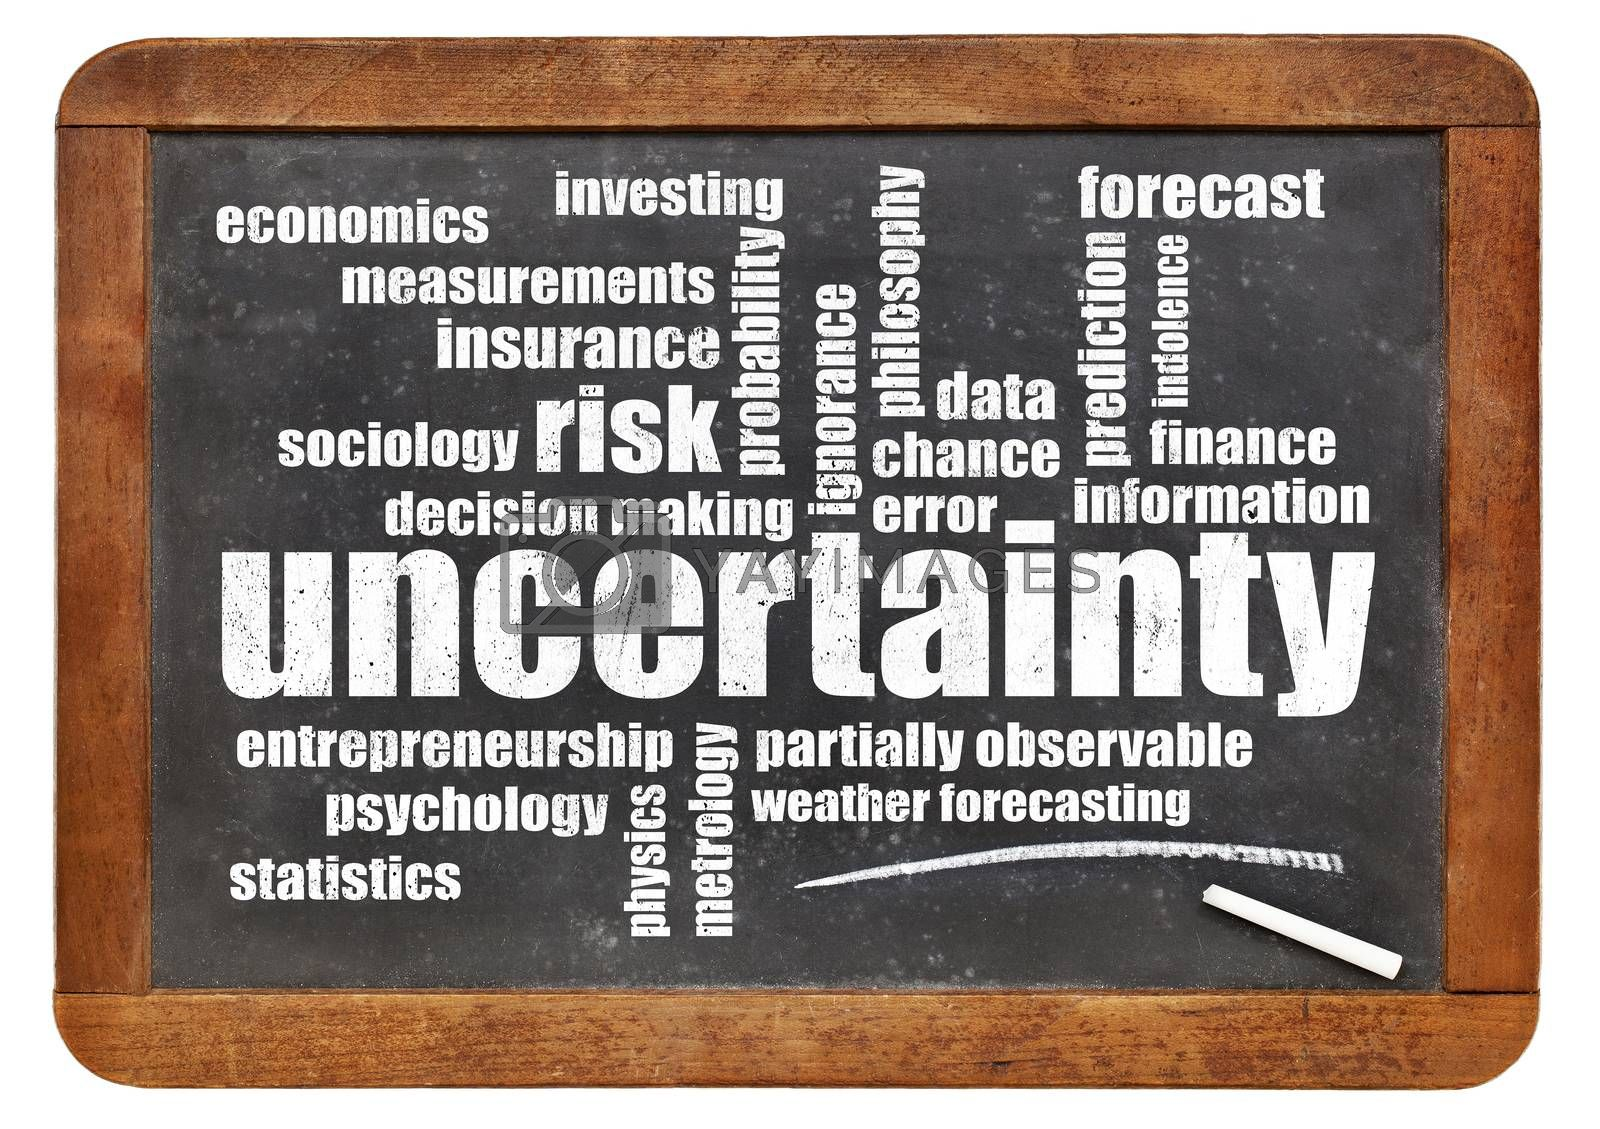 uncertainty and risk word cloud - white chalk text on a vintage blackboard